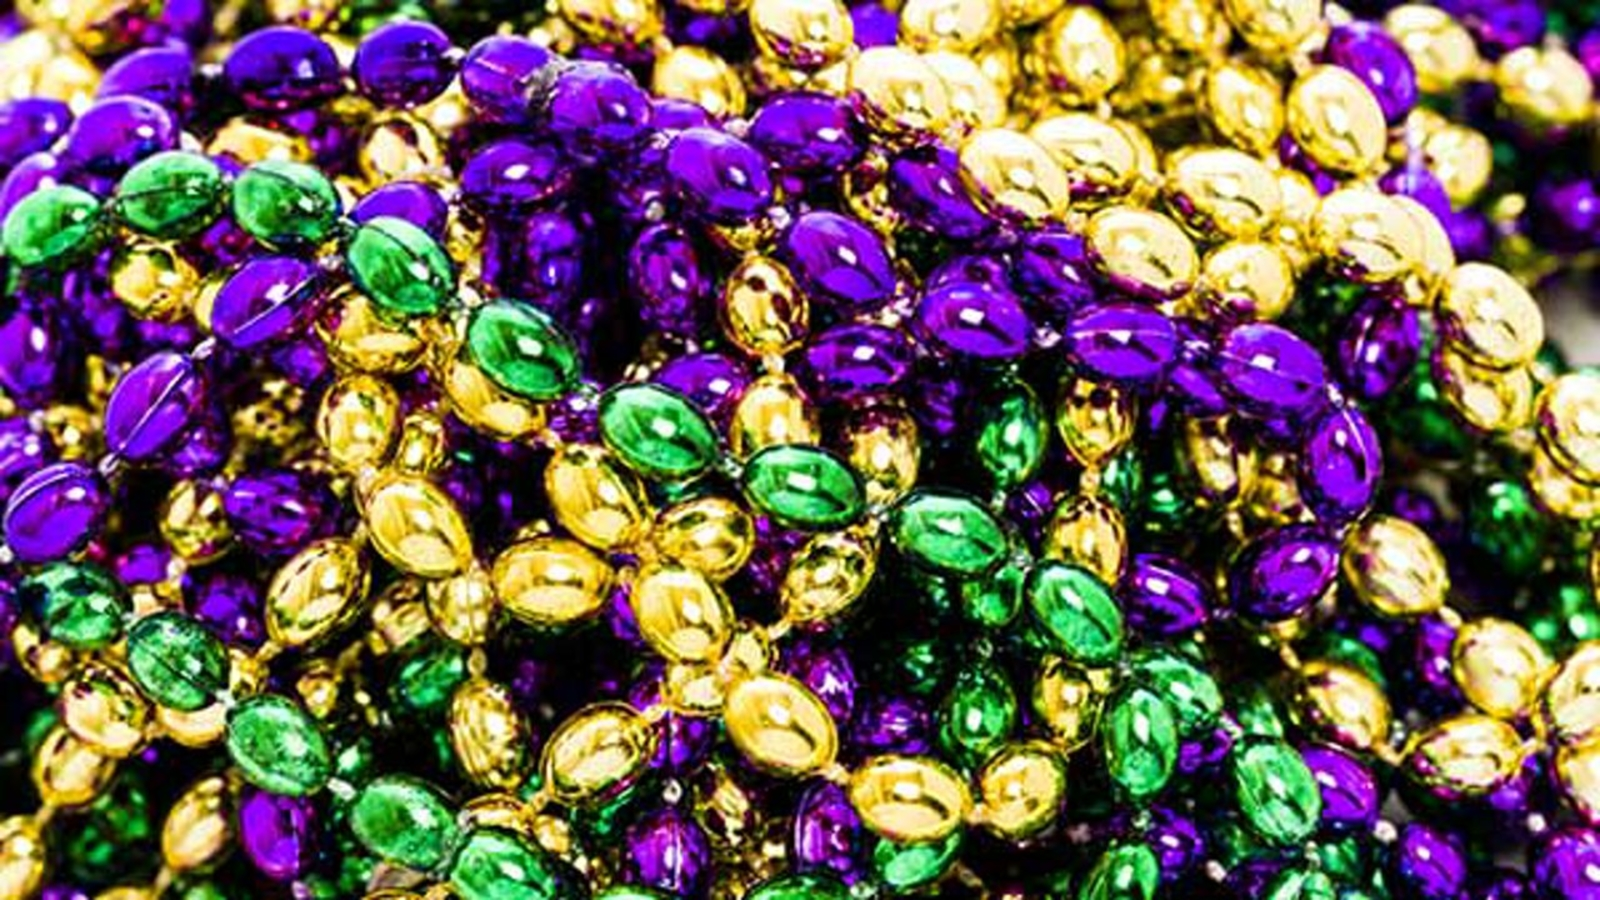 93 000 Pounds Of Mardi Gras Beads Found In New Orleans